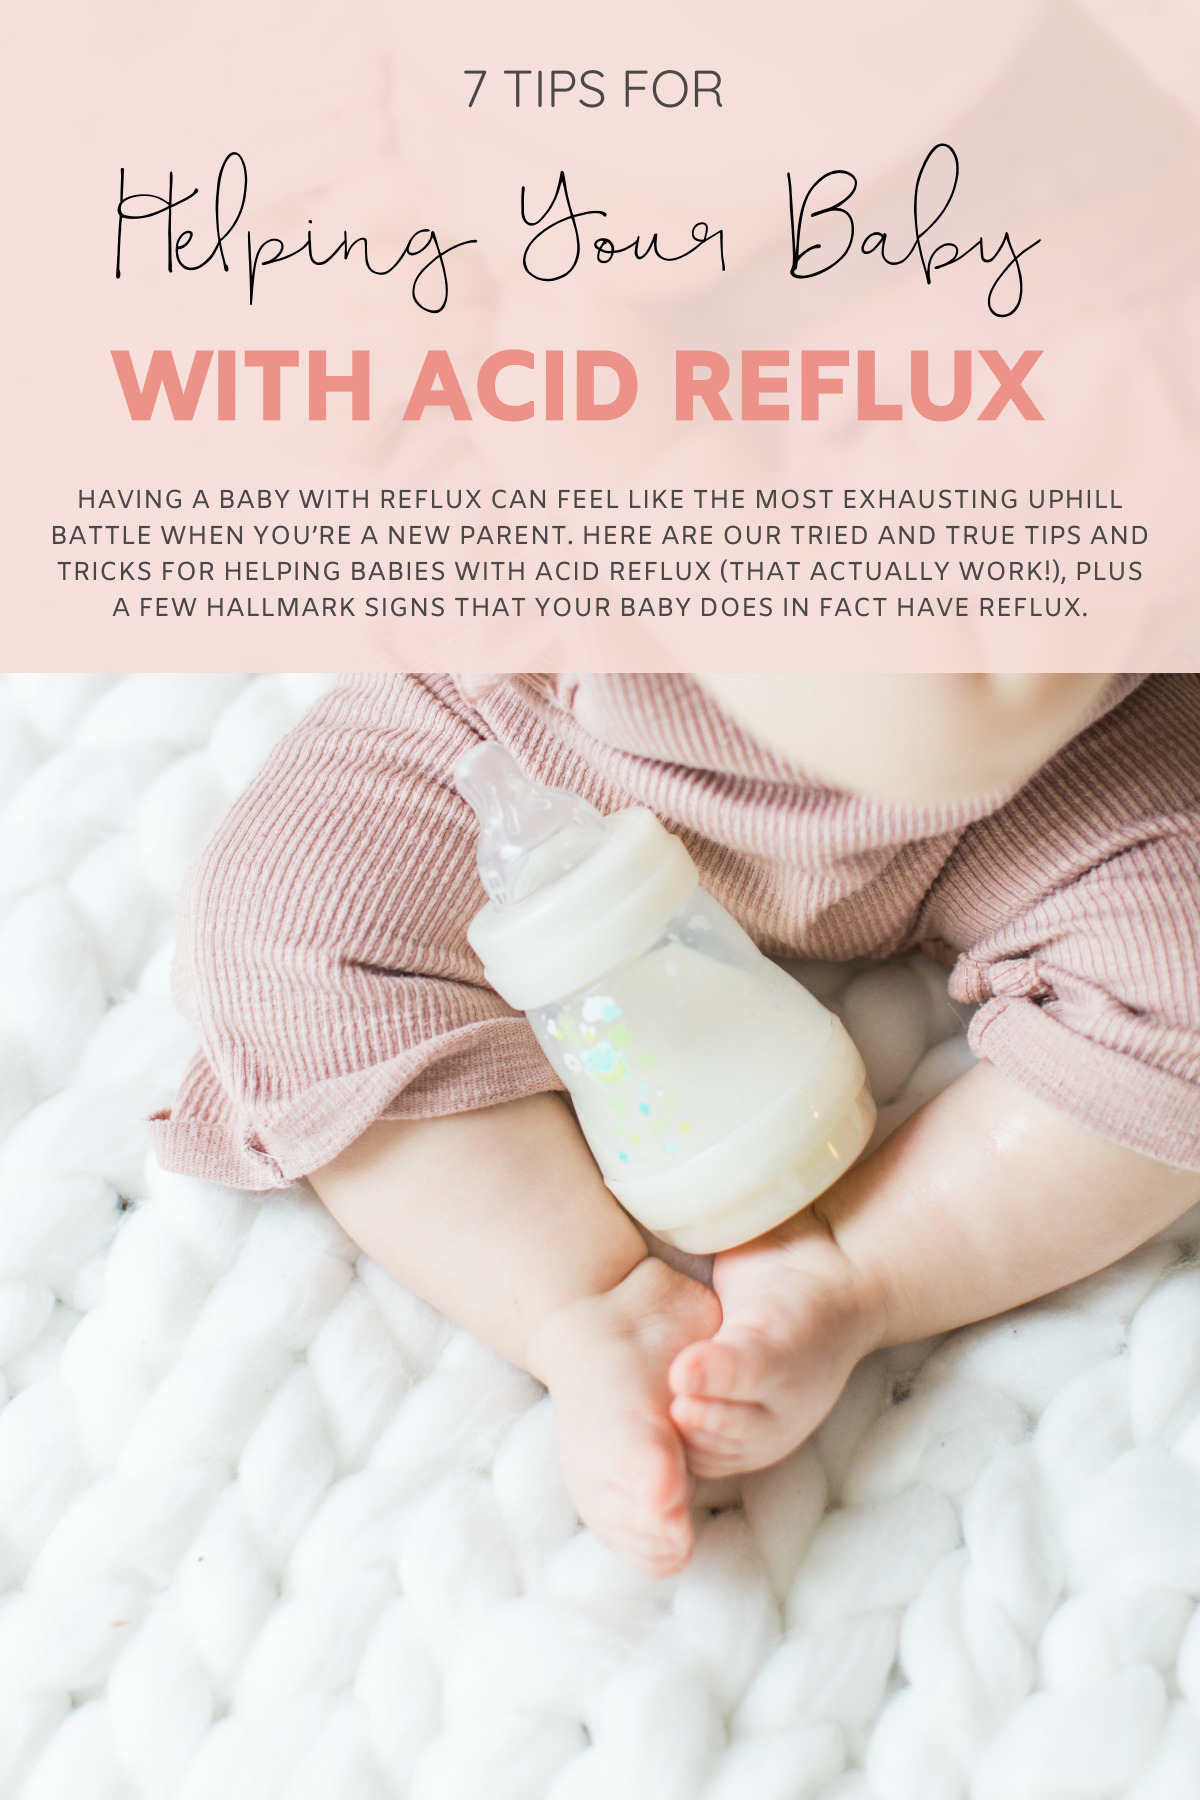 Having a baby with acid reflux can feel like the most exhausting uphill battle when you're a new parent. Having had two babies who both suffered from acid reflux, and after talking to countless doctors and fellow reflux families, we came up with a list of 7 tips and tricks for helping babies with acid reflux (that actually work!), plus a few hallmark signs that your baby does in fact have reflux.